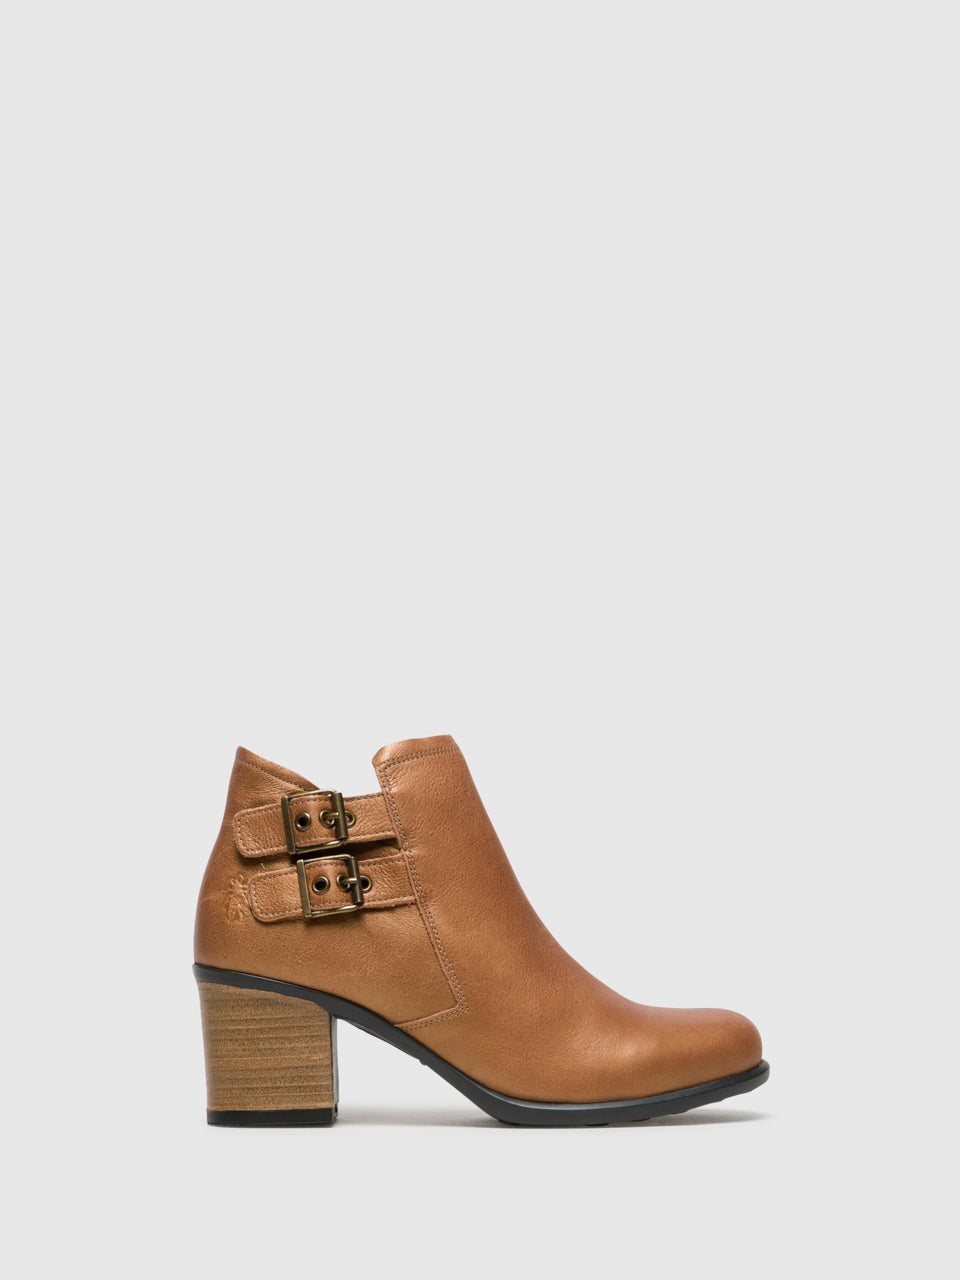 Fly London SandyBrown Zip Up Ankle Boots